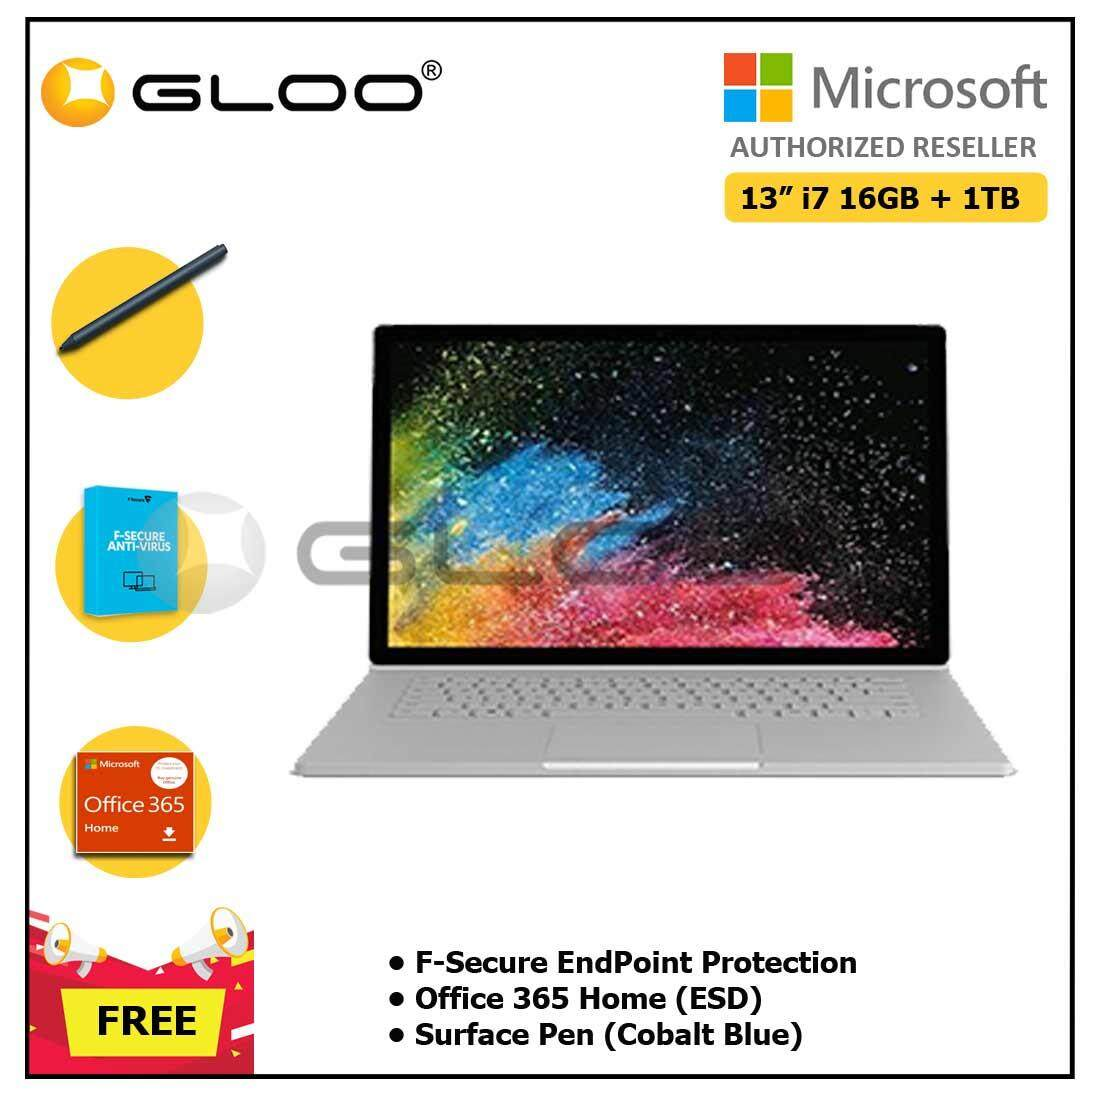 """Microsoft Surface Book 2 13"""" Core i7/16GB RAM - 1TB + F-Secure EndPoint Protection + Office 365 Home ESD + Pen Cobalt Blue"""